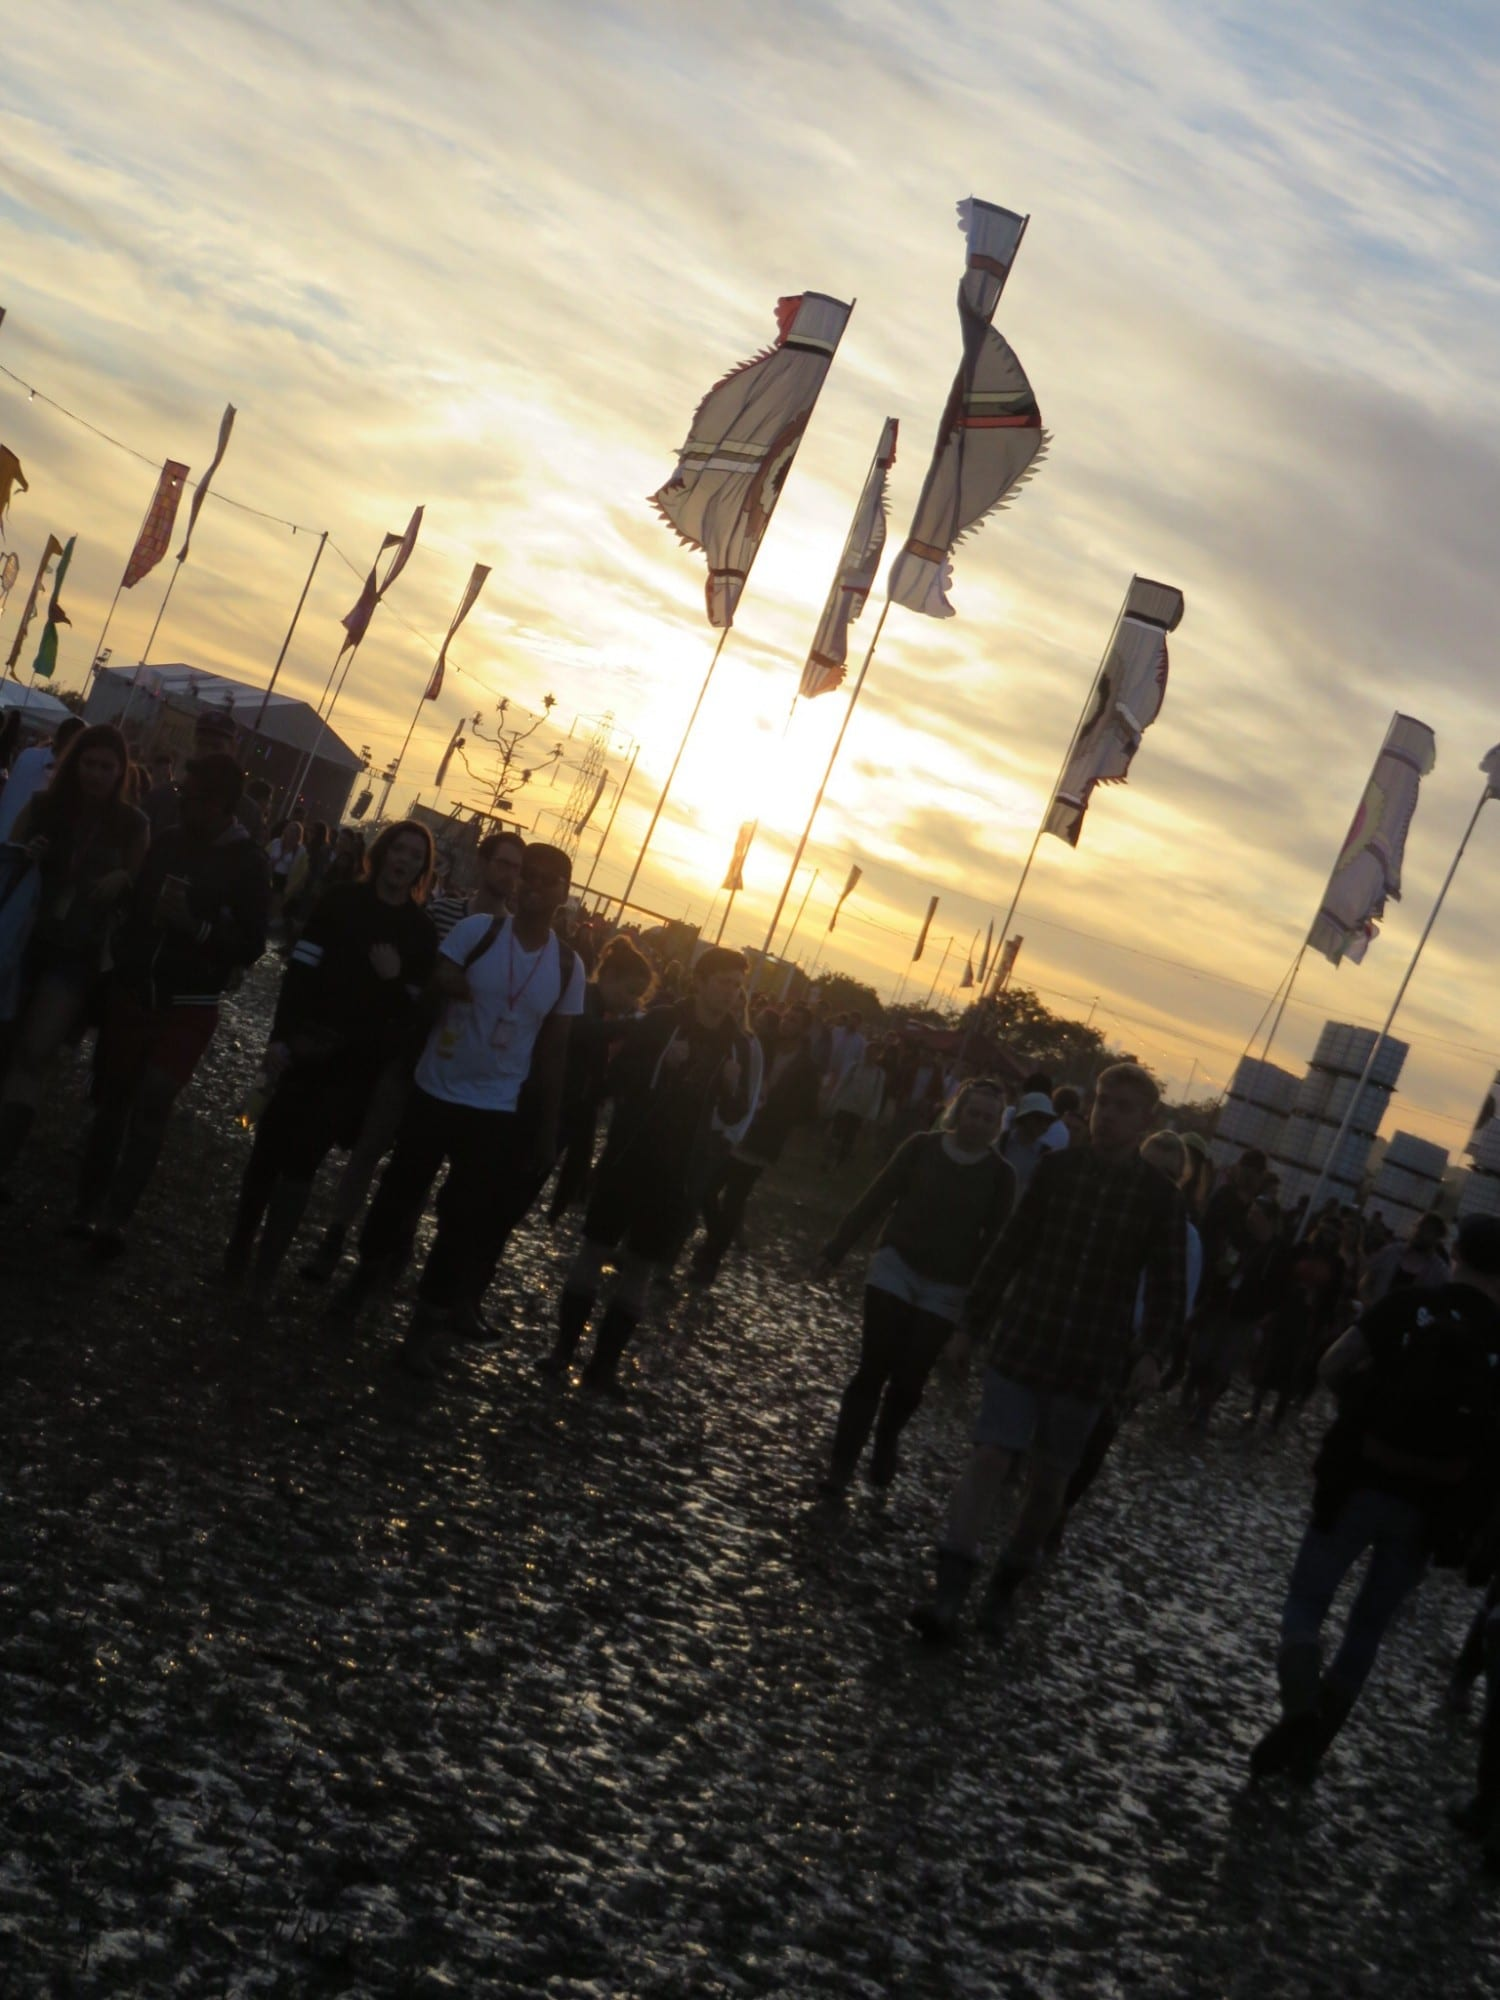 Sun shining at Glastonbury right after the rain. You have to pack for every kind of weather!